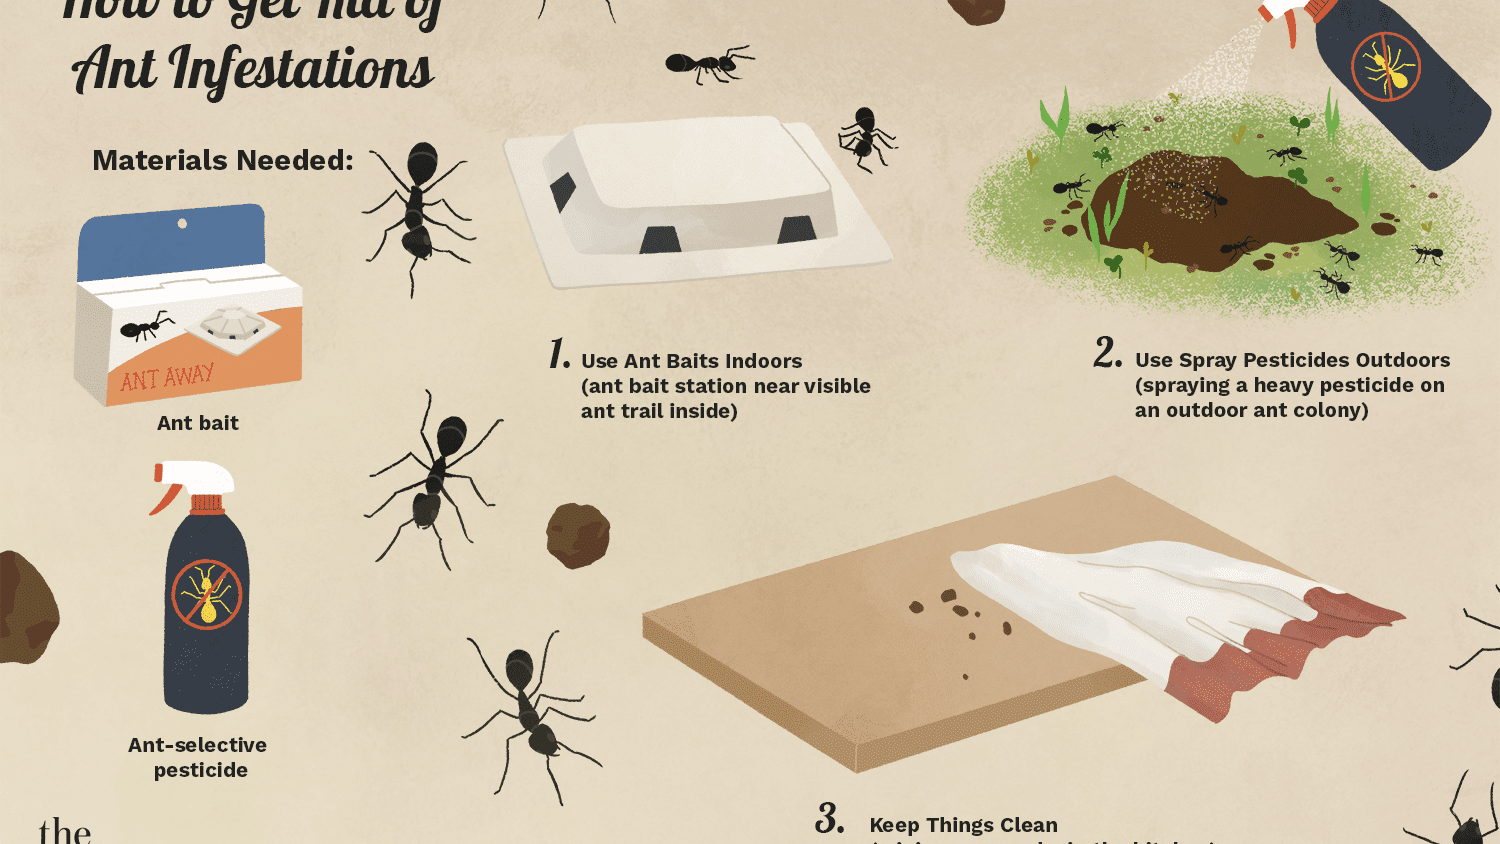 How To Get Rid Of Ants In The House, How To Get Rid Of Tiny Ants In Bathroom